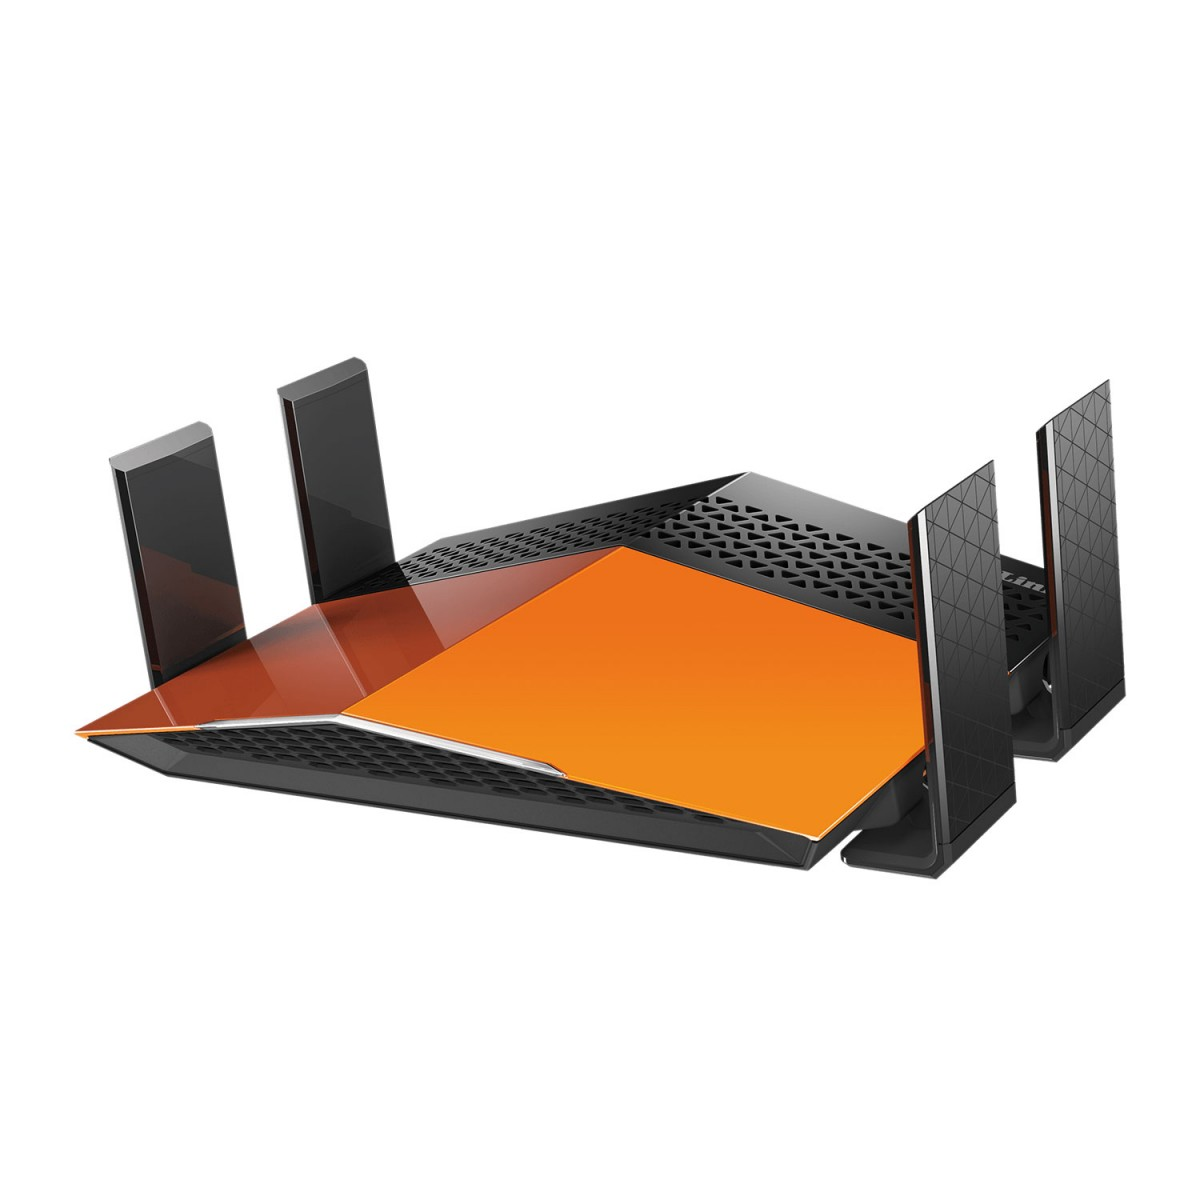 D-LINK Exo AC1750 Wireless Router